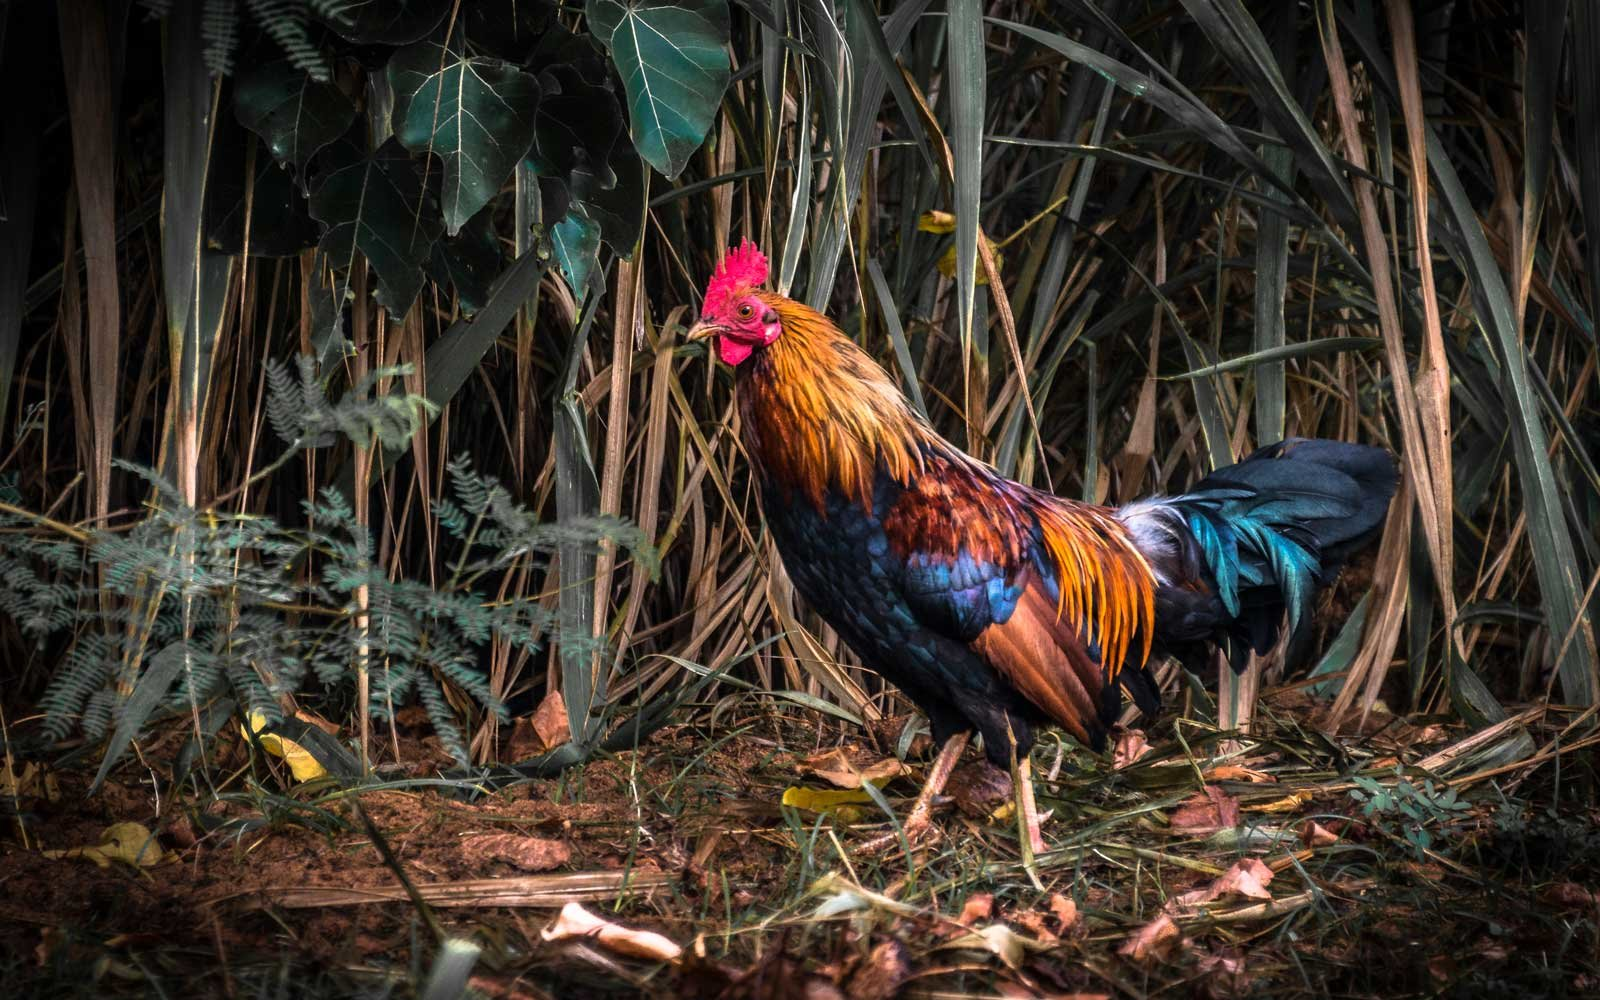 One of Kauai's many feral roosters poses for a picture. The Hawaiian island is home to thousand of wild chickens.